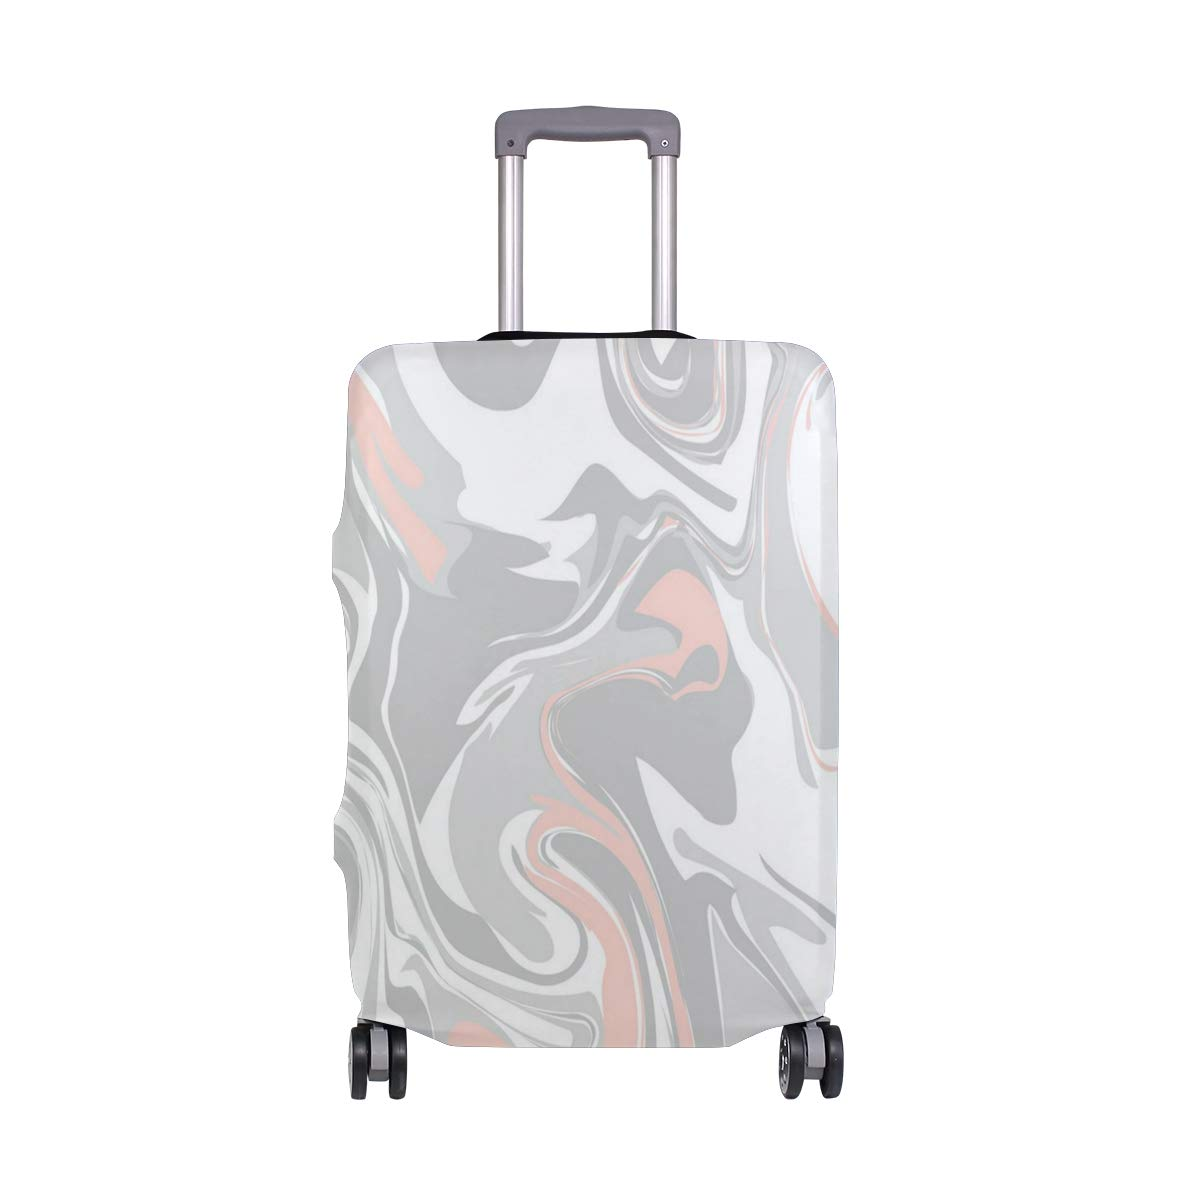 Gentle Complexion Marble Pattern Traveler Lightweight Rotating Luggage Cover Can Carry With You Can Expand Travel Bag Trolley Rolling Luggage Cover